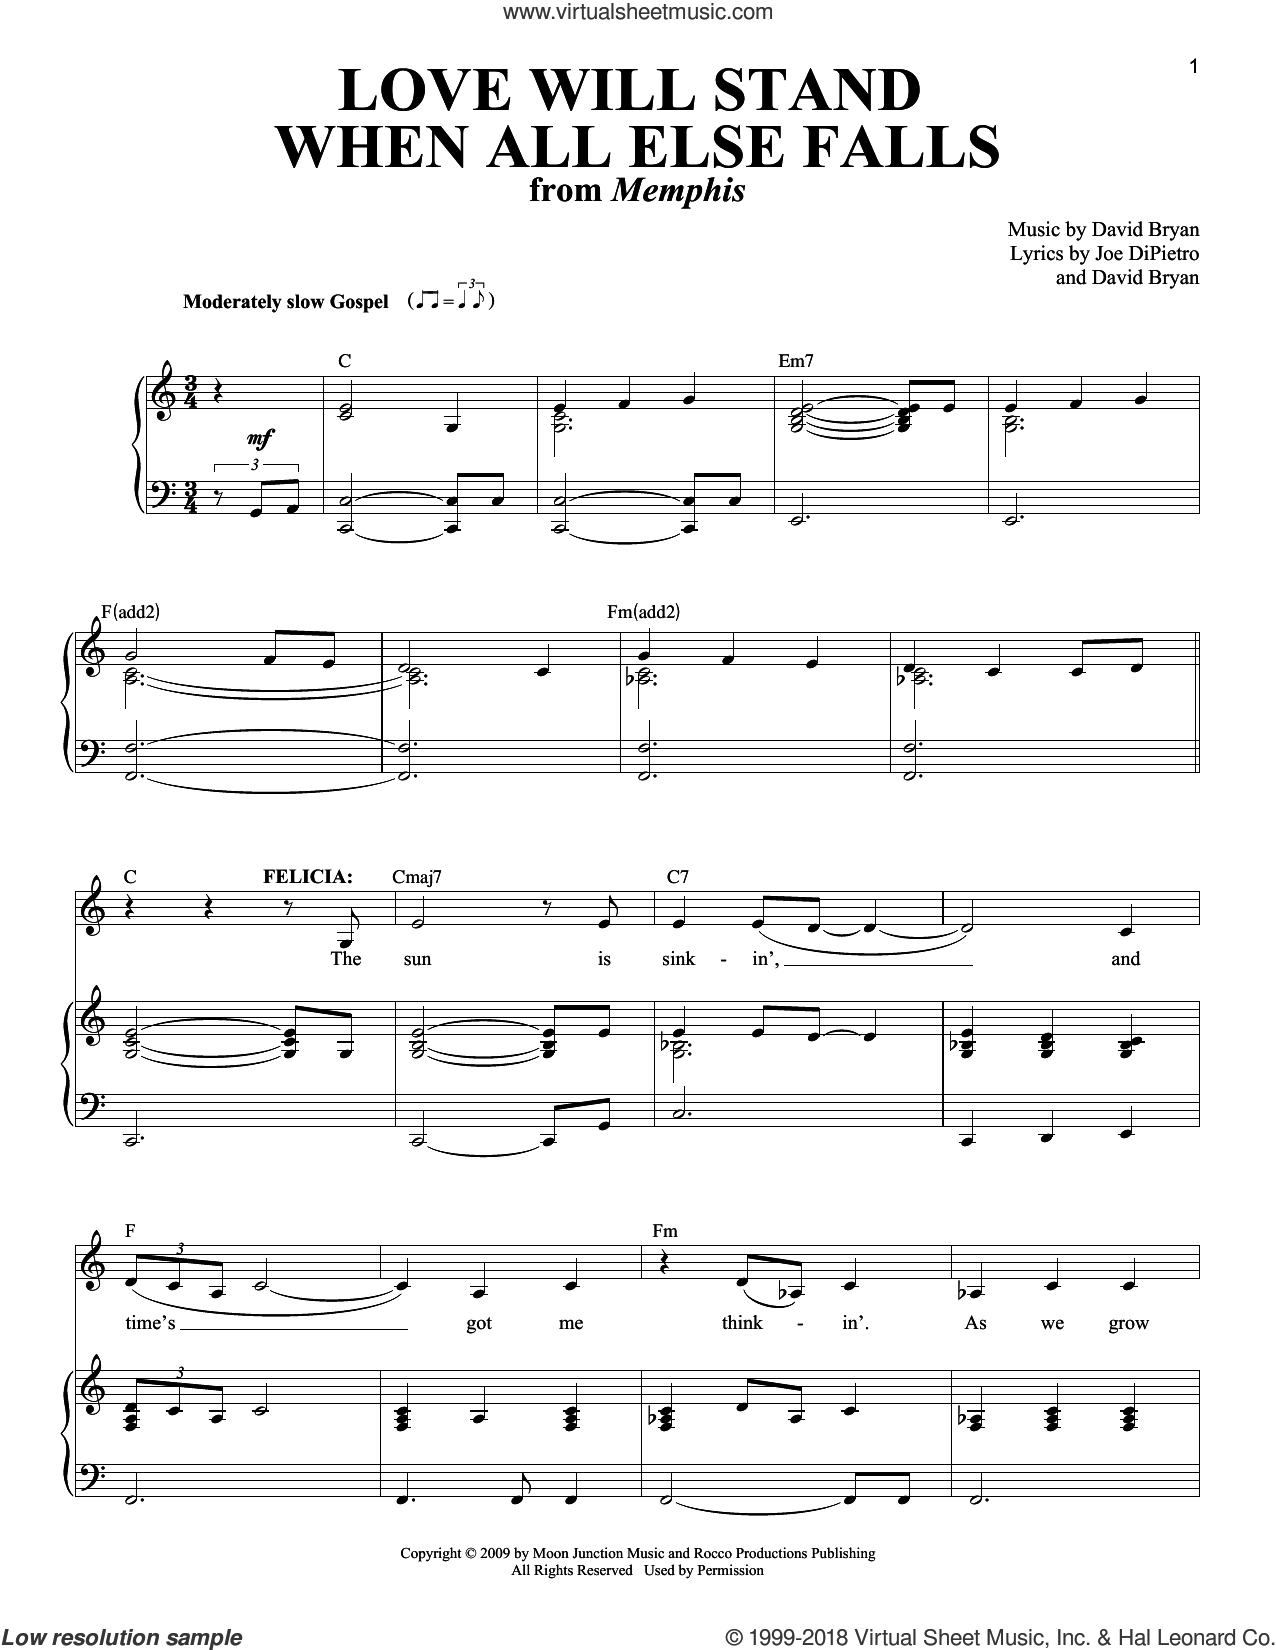 Love Will Stand When All Else Falls sheet music for voice and piano by Joe DiPietro and David Bryan, intermediate skill level